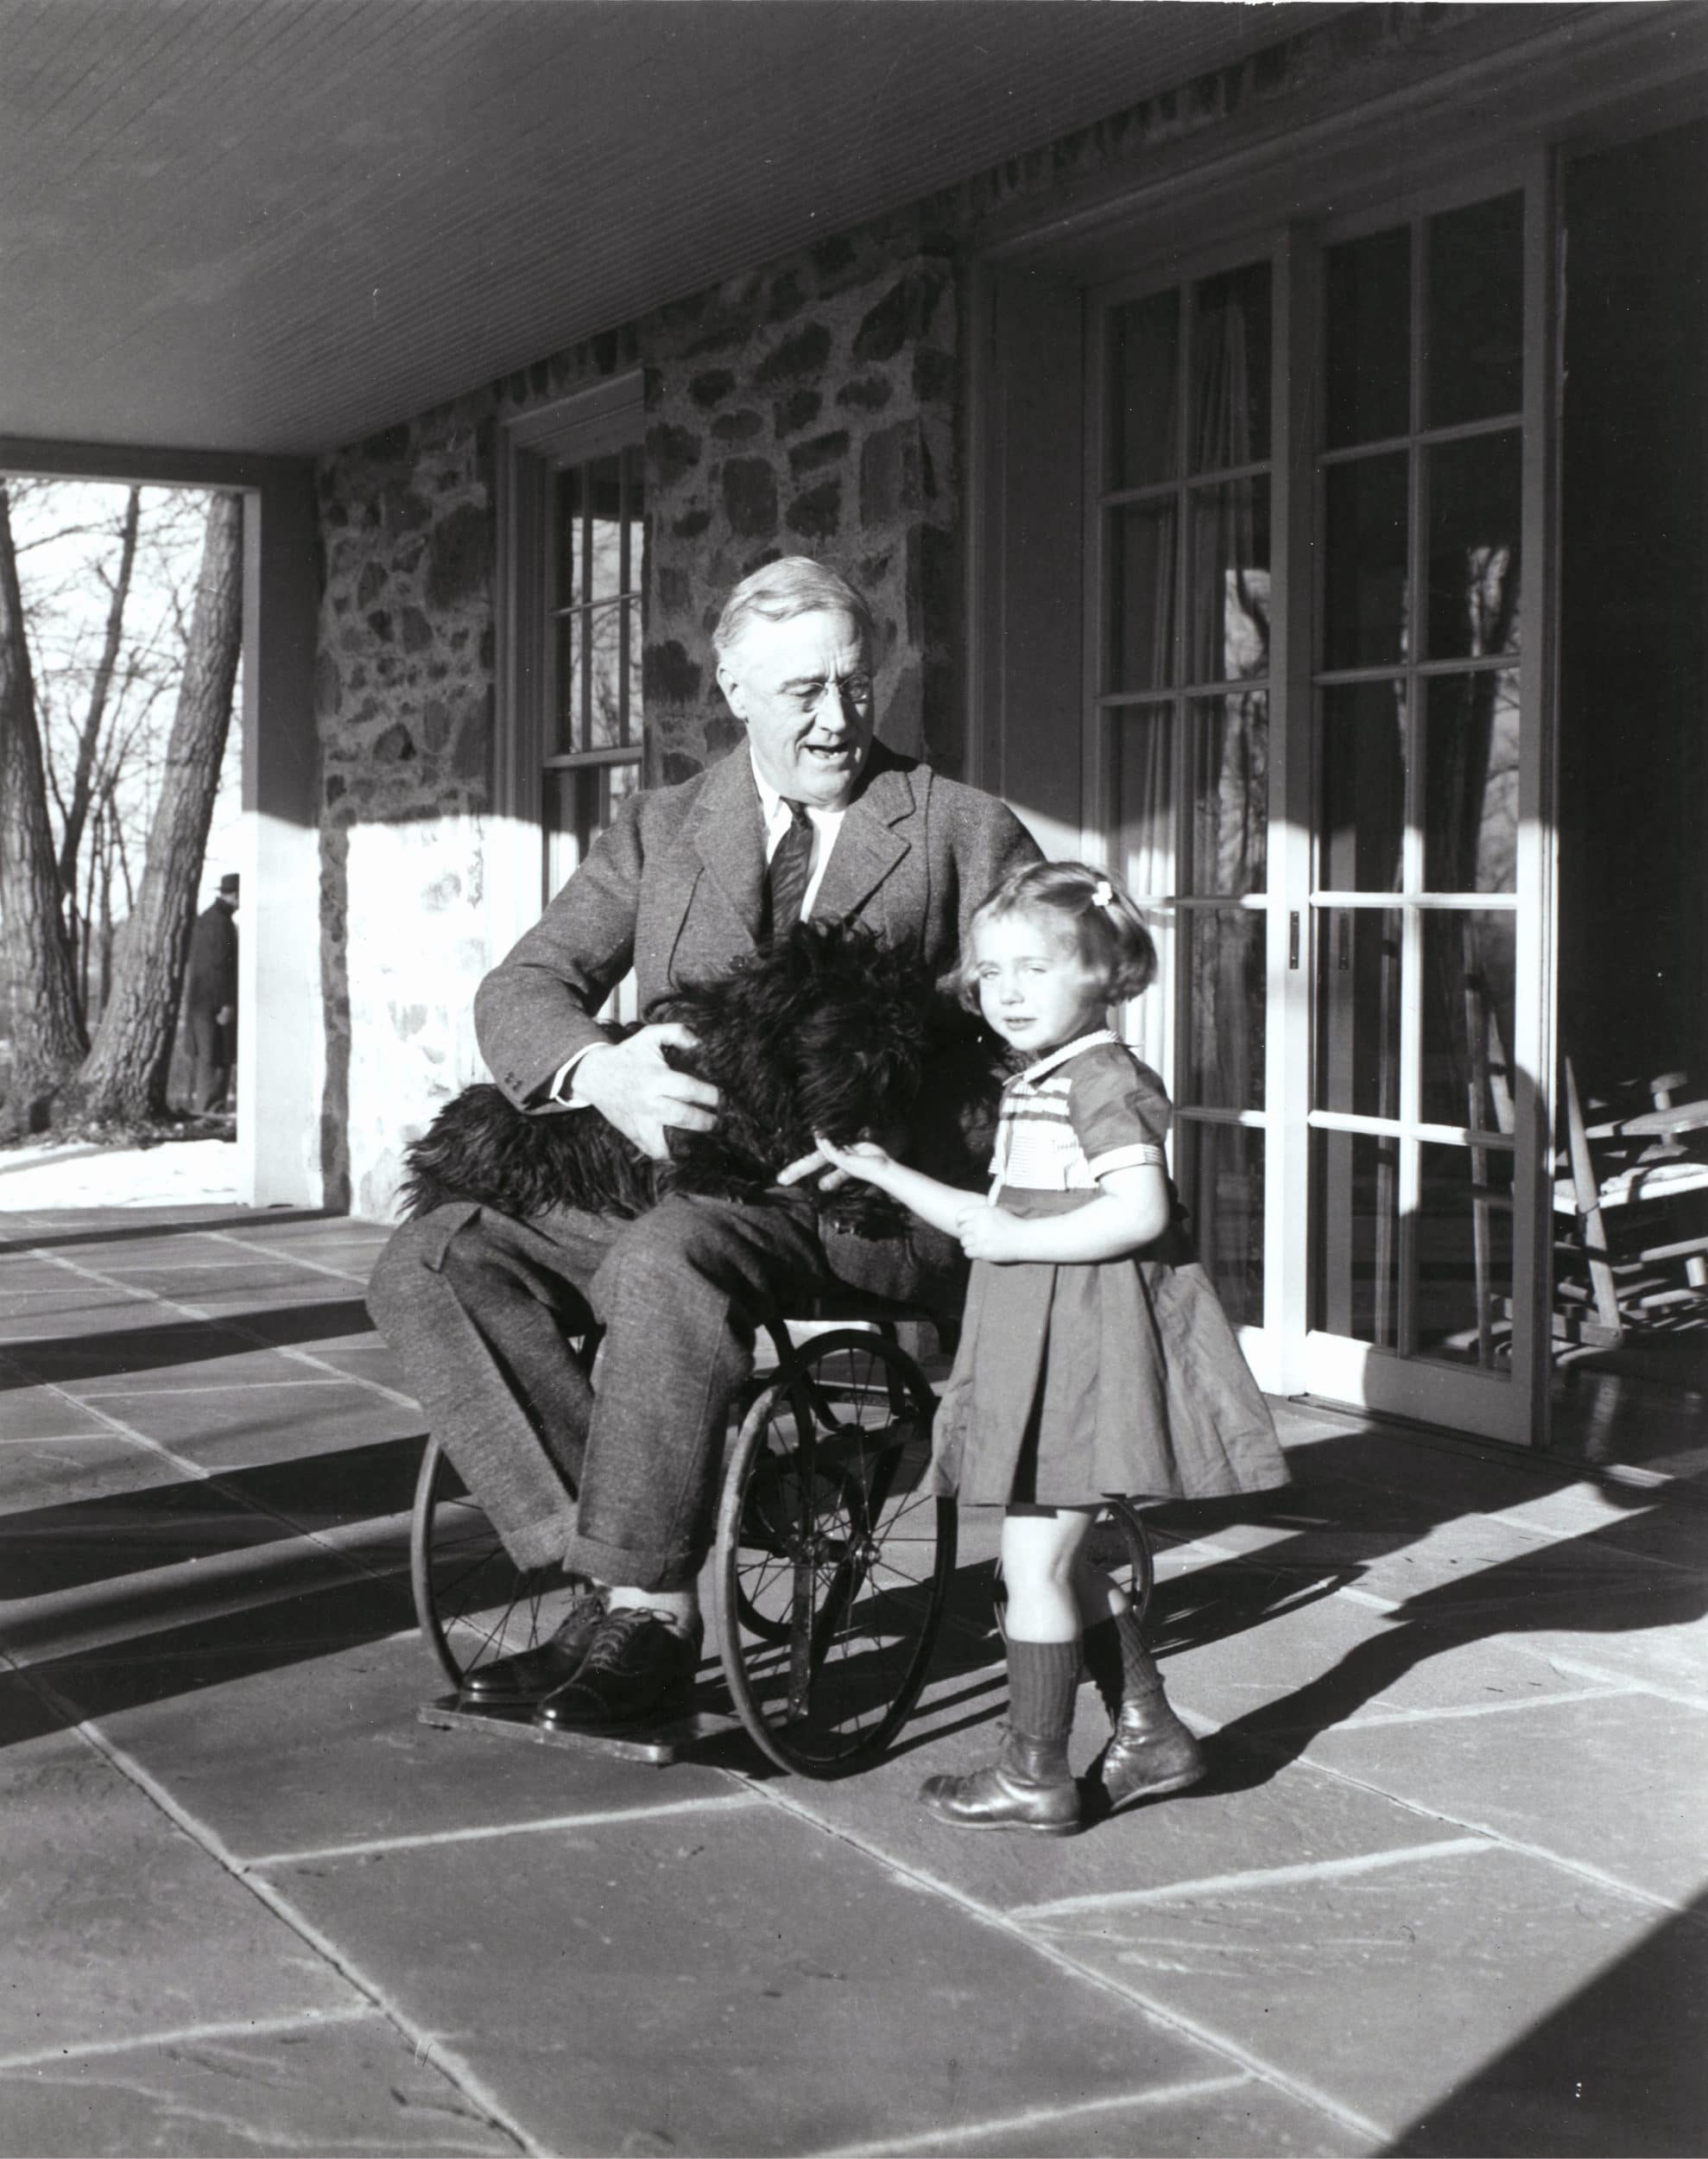 Photograph of FDR in a wheelchair with a young child.